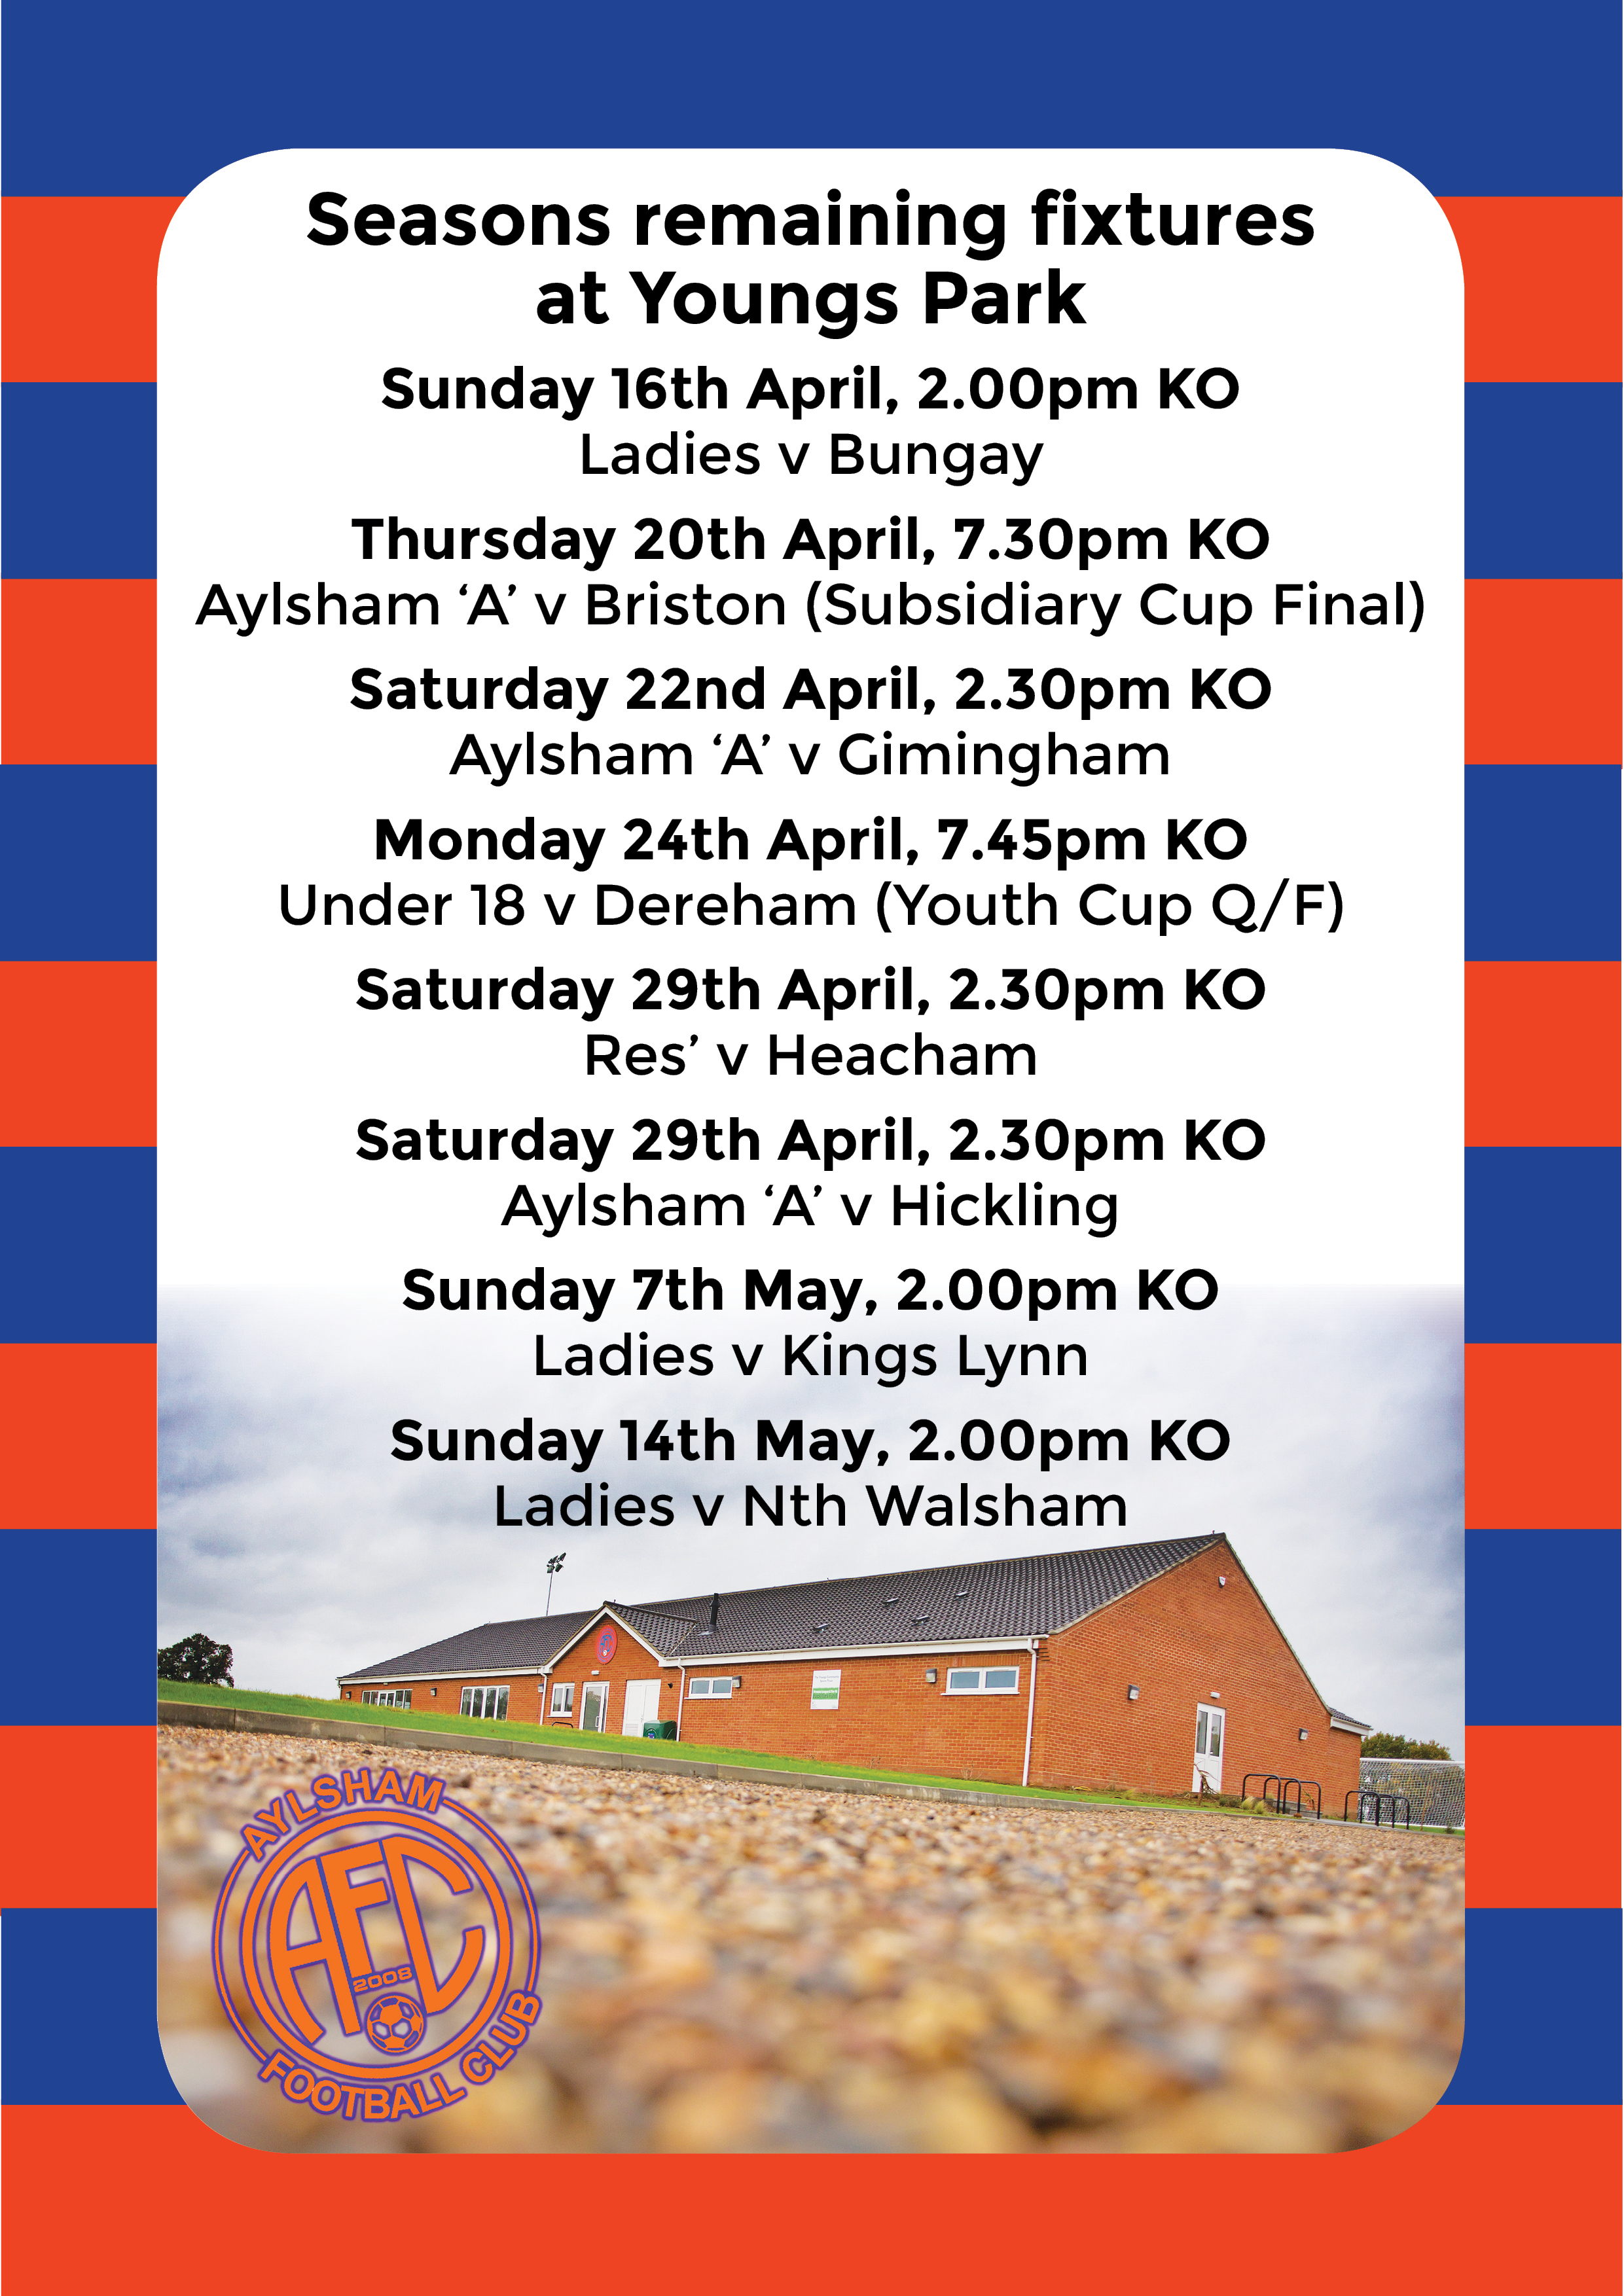 Upcoming fixtures at Youngs Park